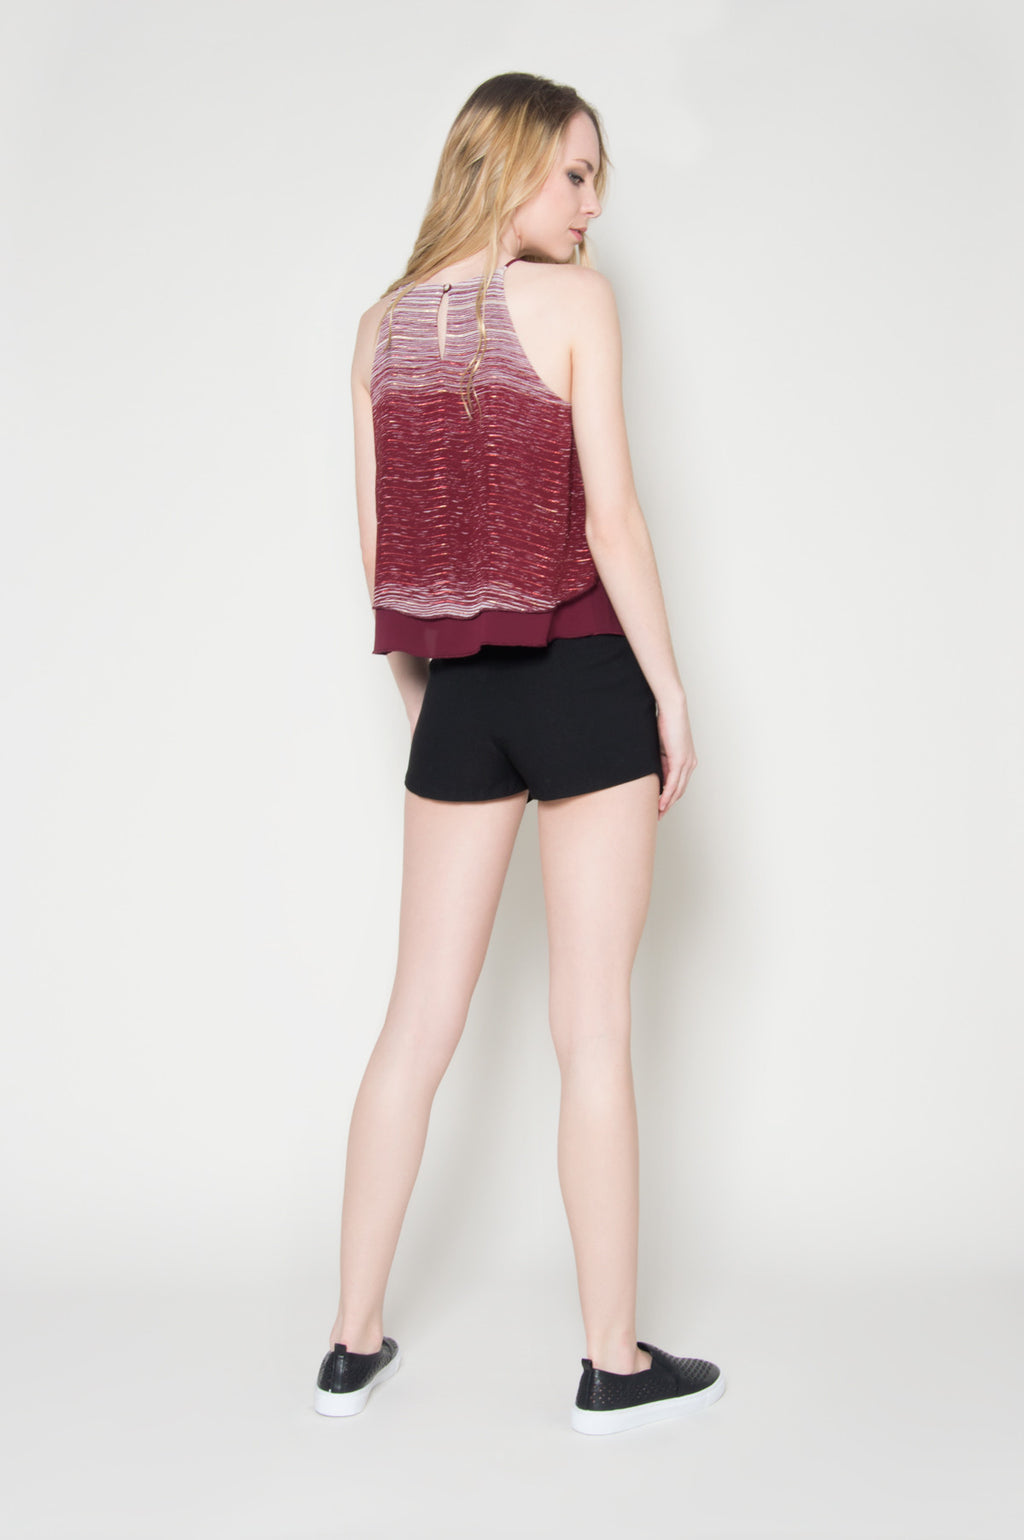 Lucid dream chiffon double layer top, Tops